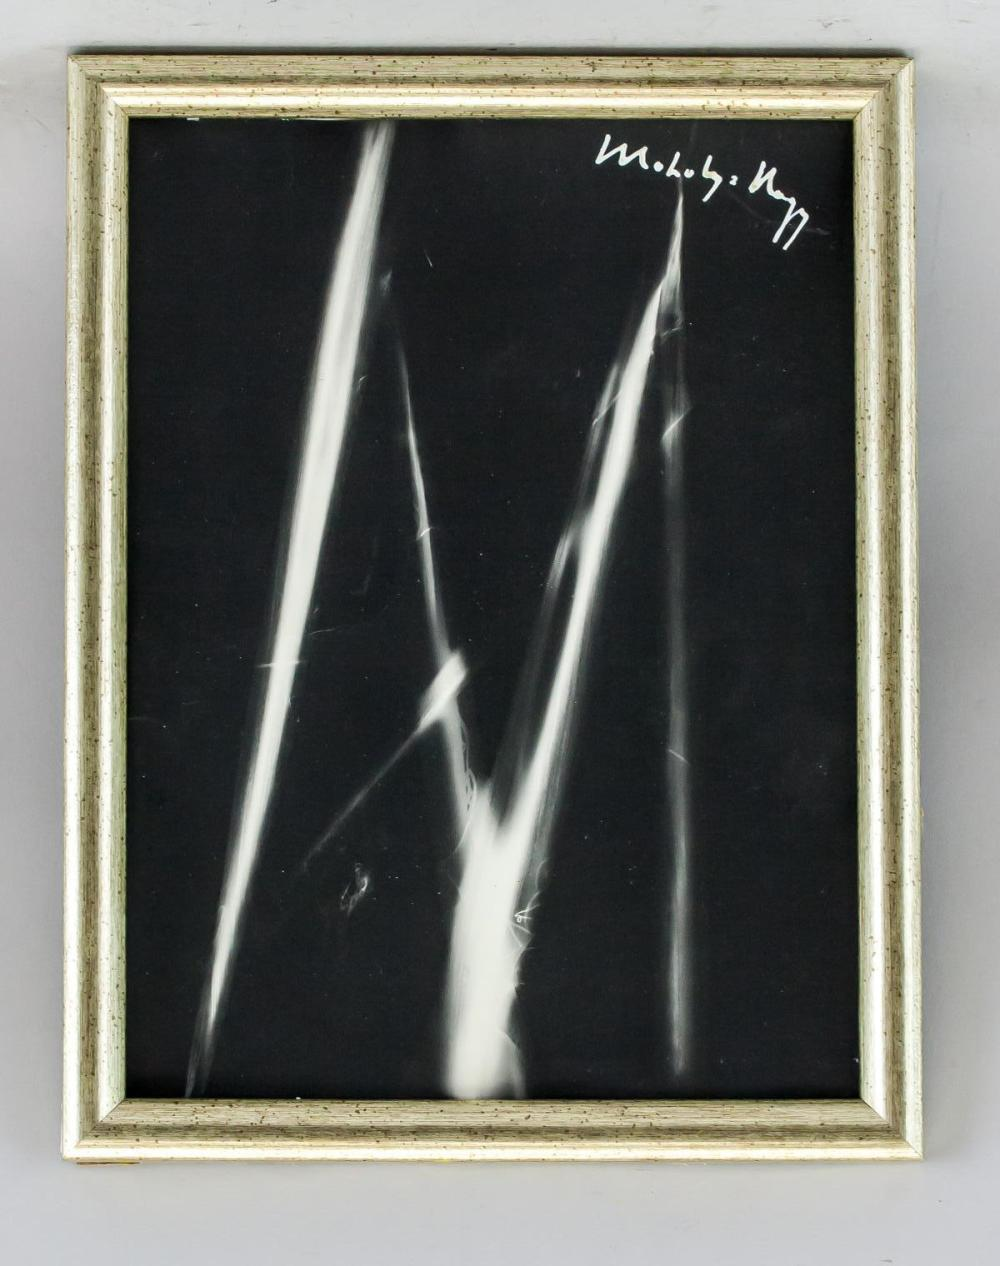 Lot 93: Moholy Nagy Hungarian Constructivist Photogram